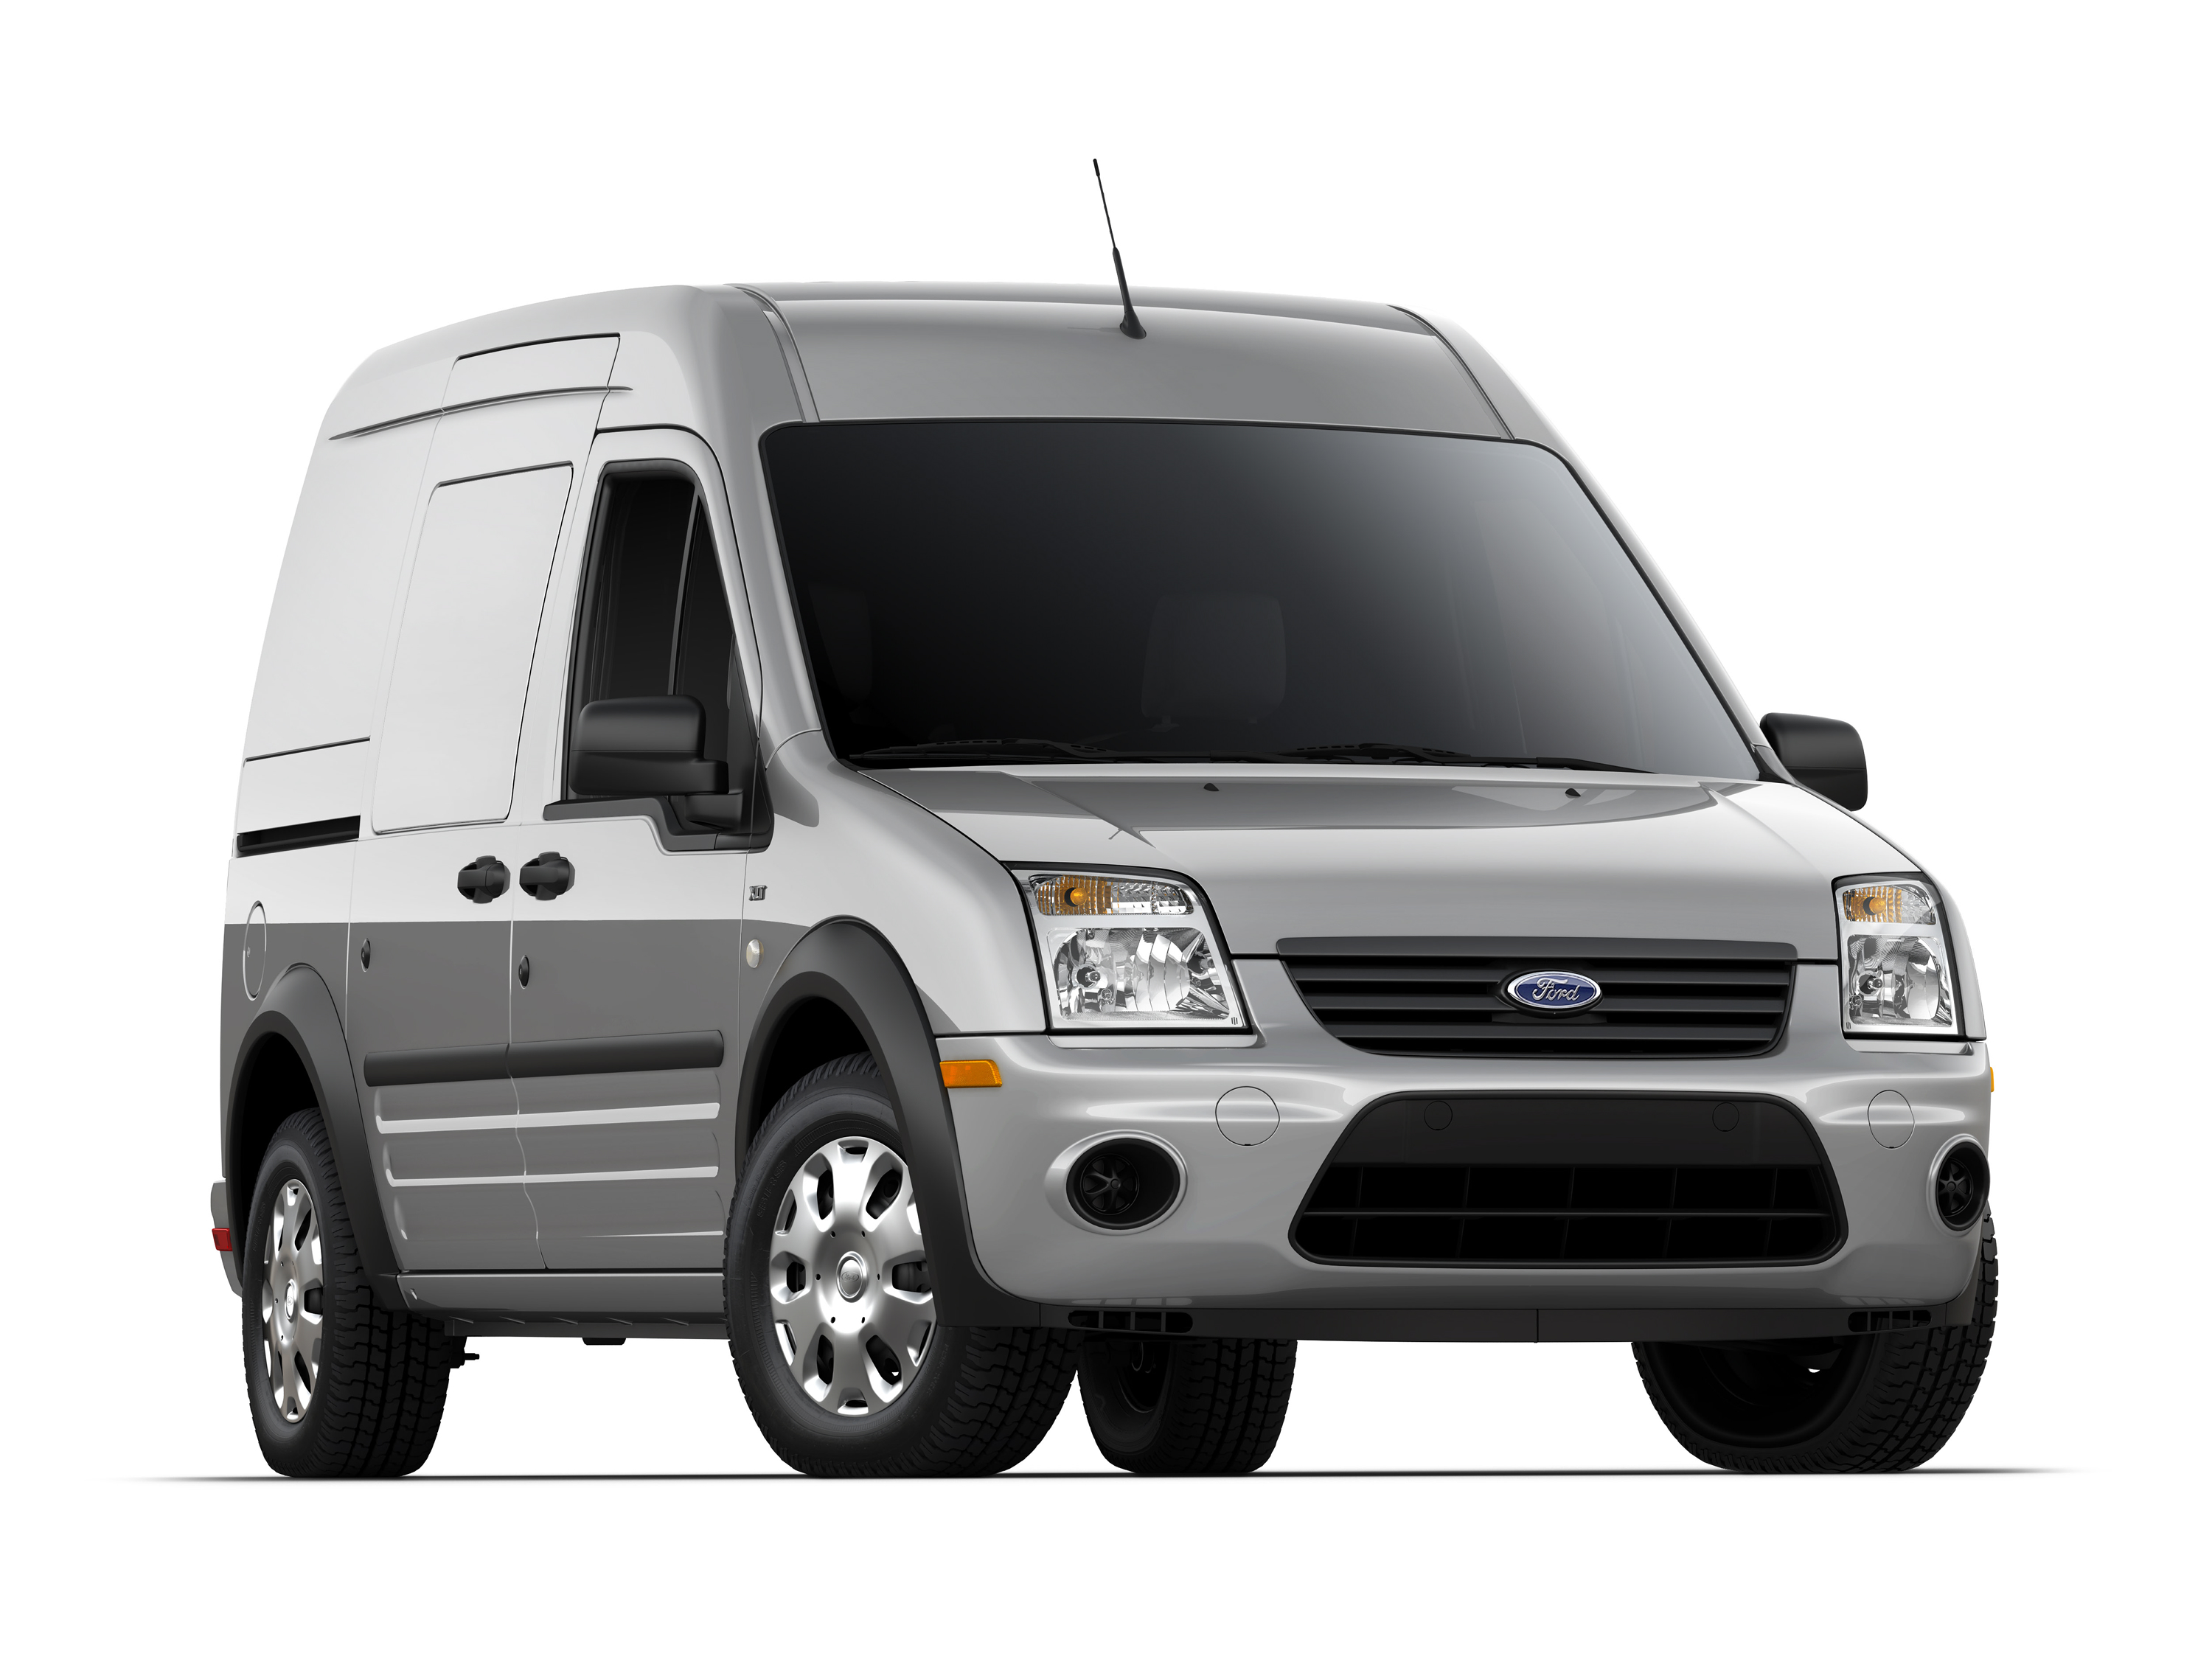 new and used ford transit connect wagon prices photos reviews specs the car connection. Black Bedroom Furniture Sets. Home Design Ideas